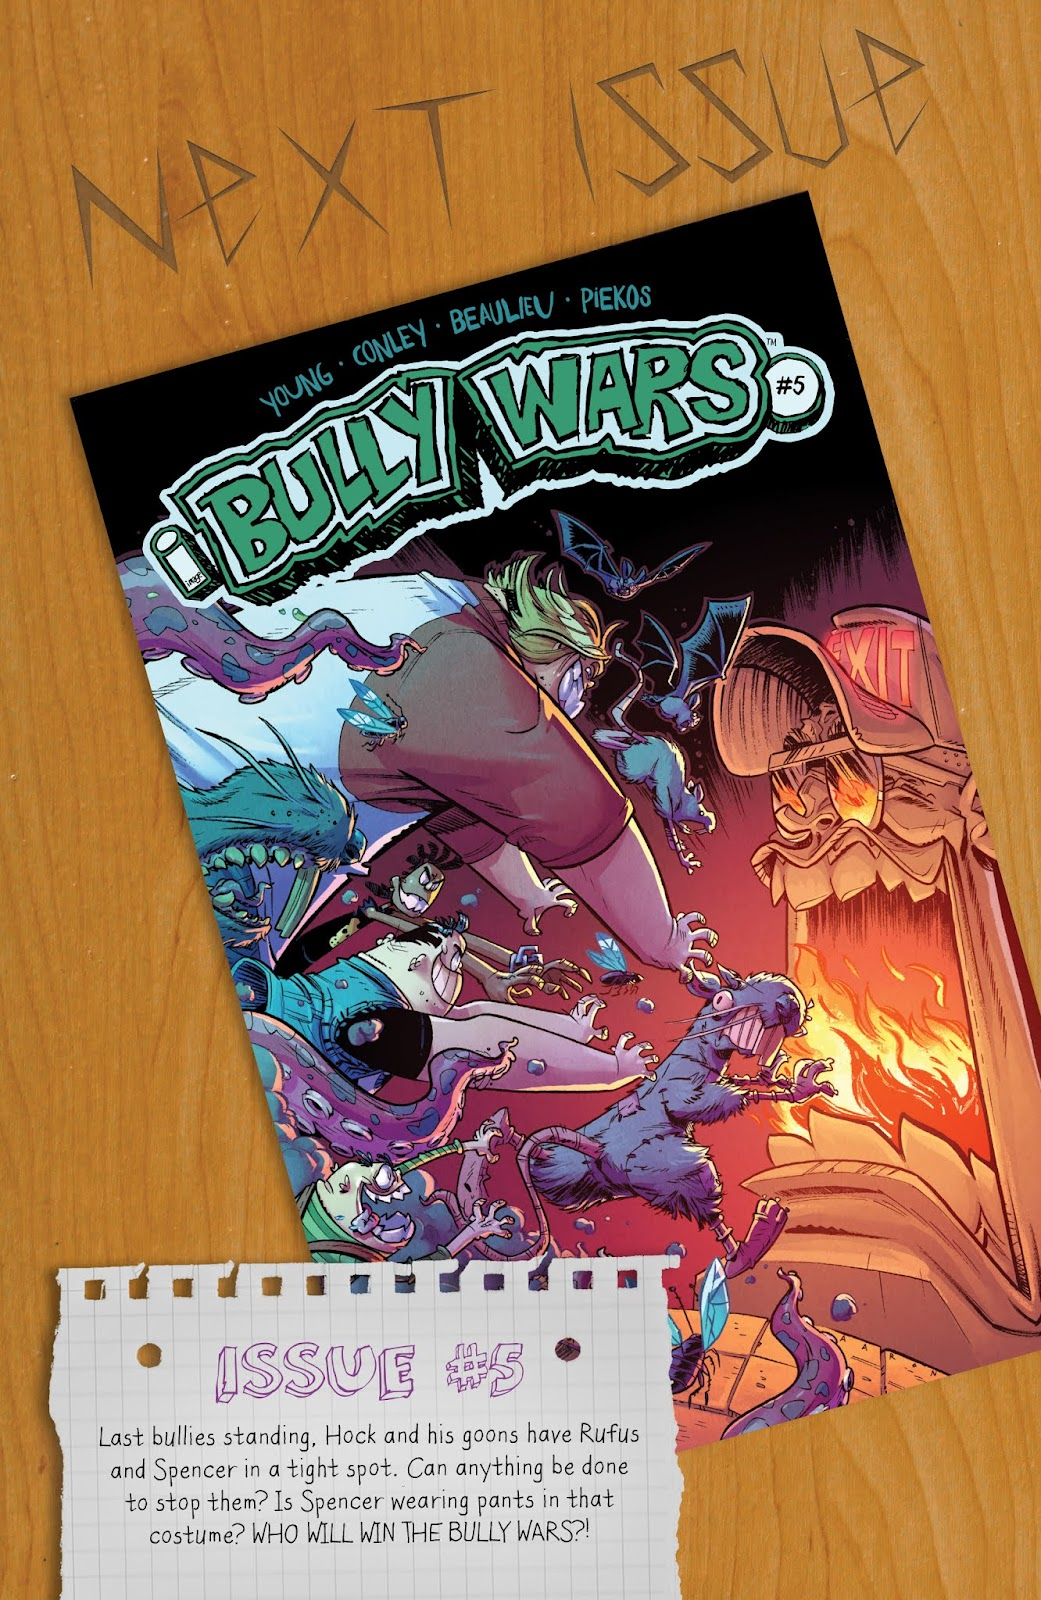 Read online Bully Wars comic -  Issue #4 - 24